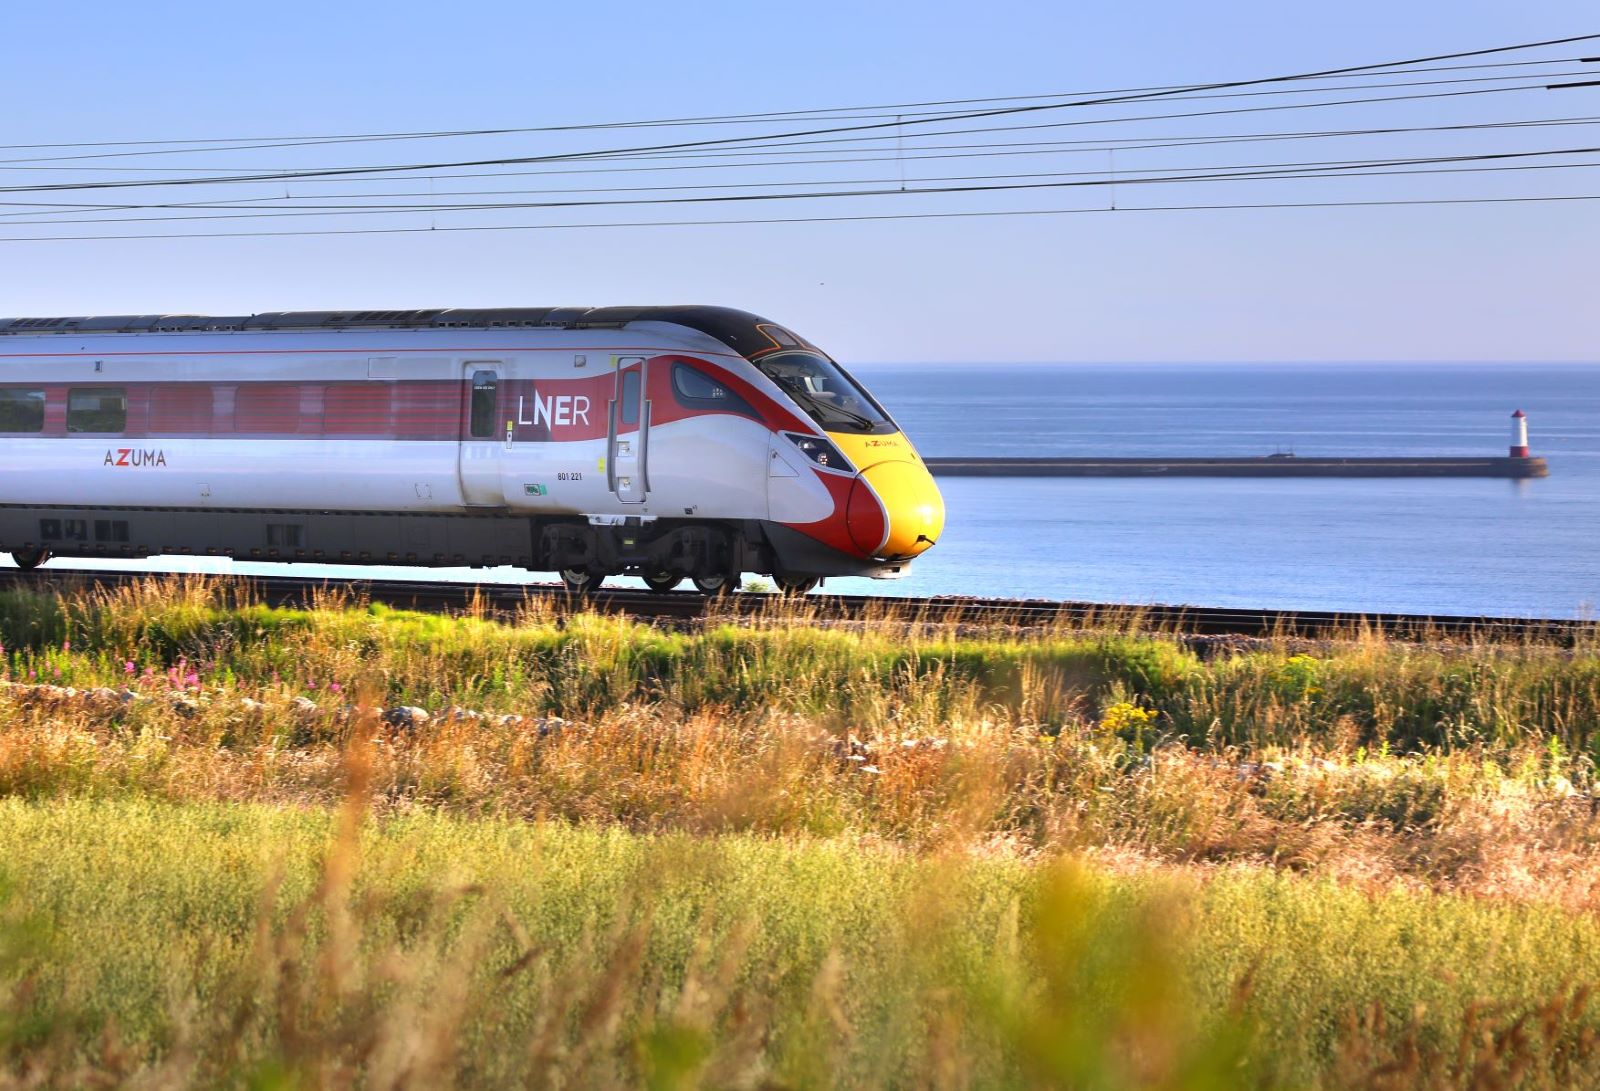 LNER Launches Sensational Seat Sale With Tickets From £5